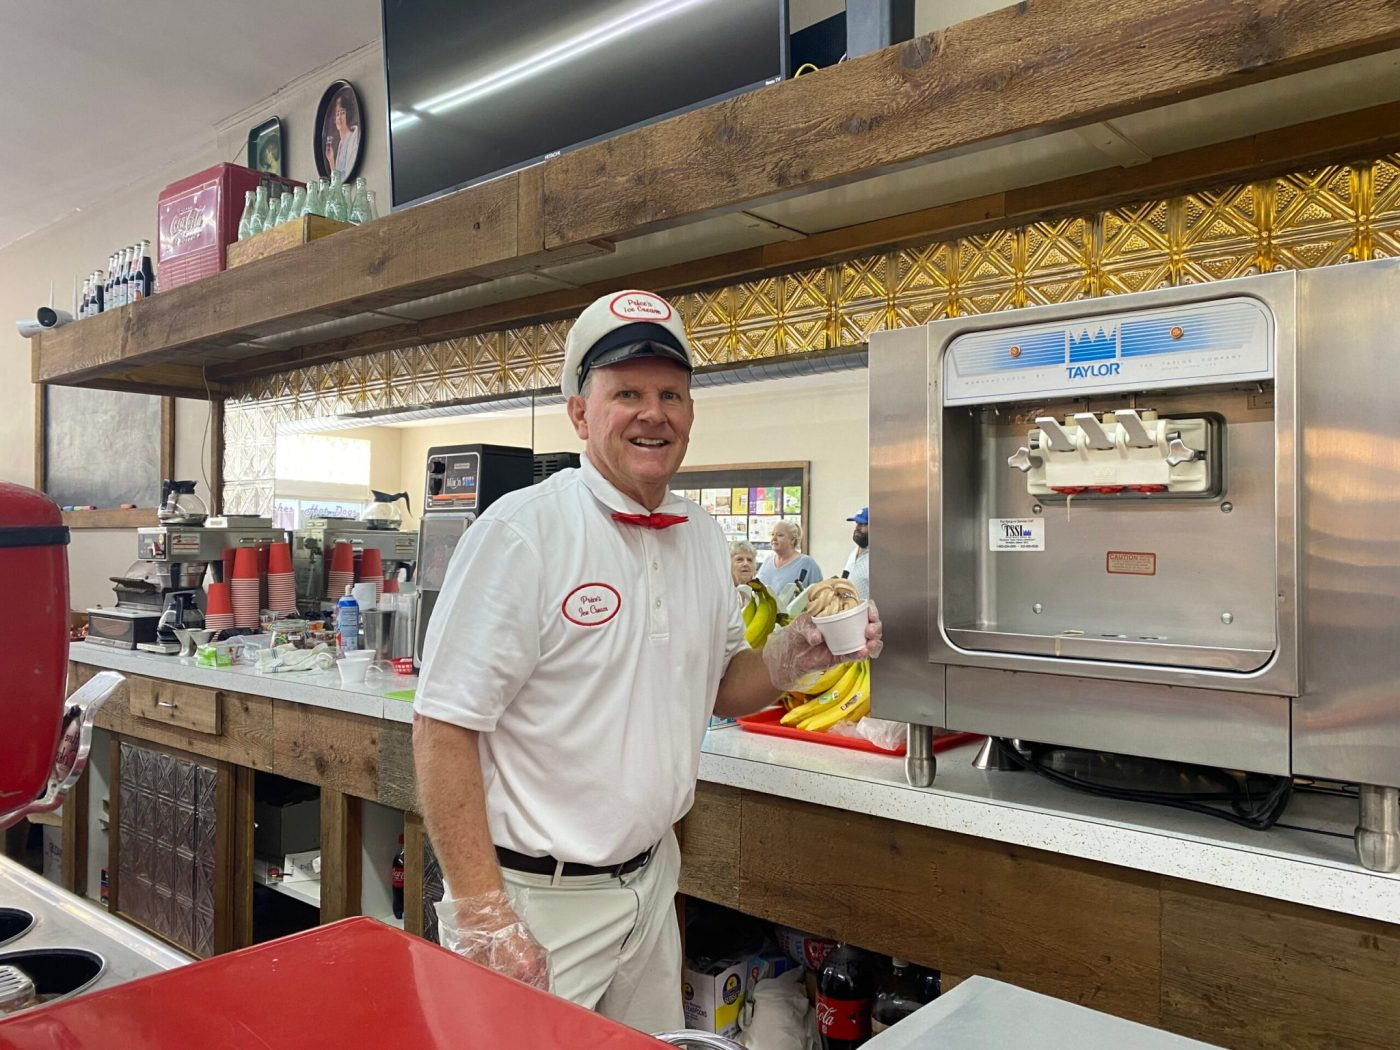 Kevin Nelson, the owner of Price's. New Birmingham opening